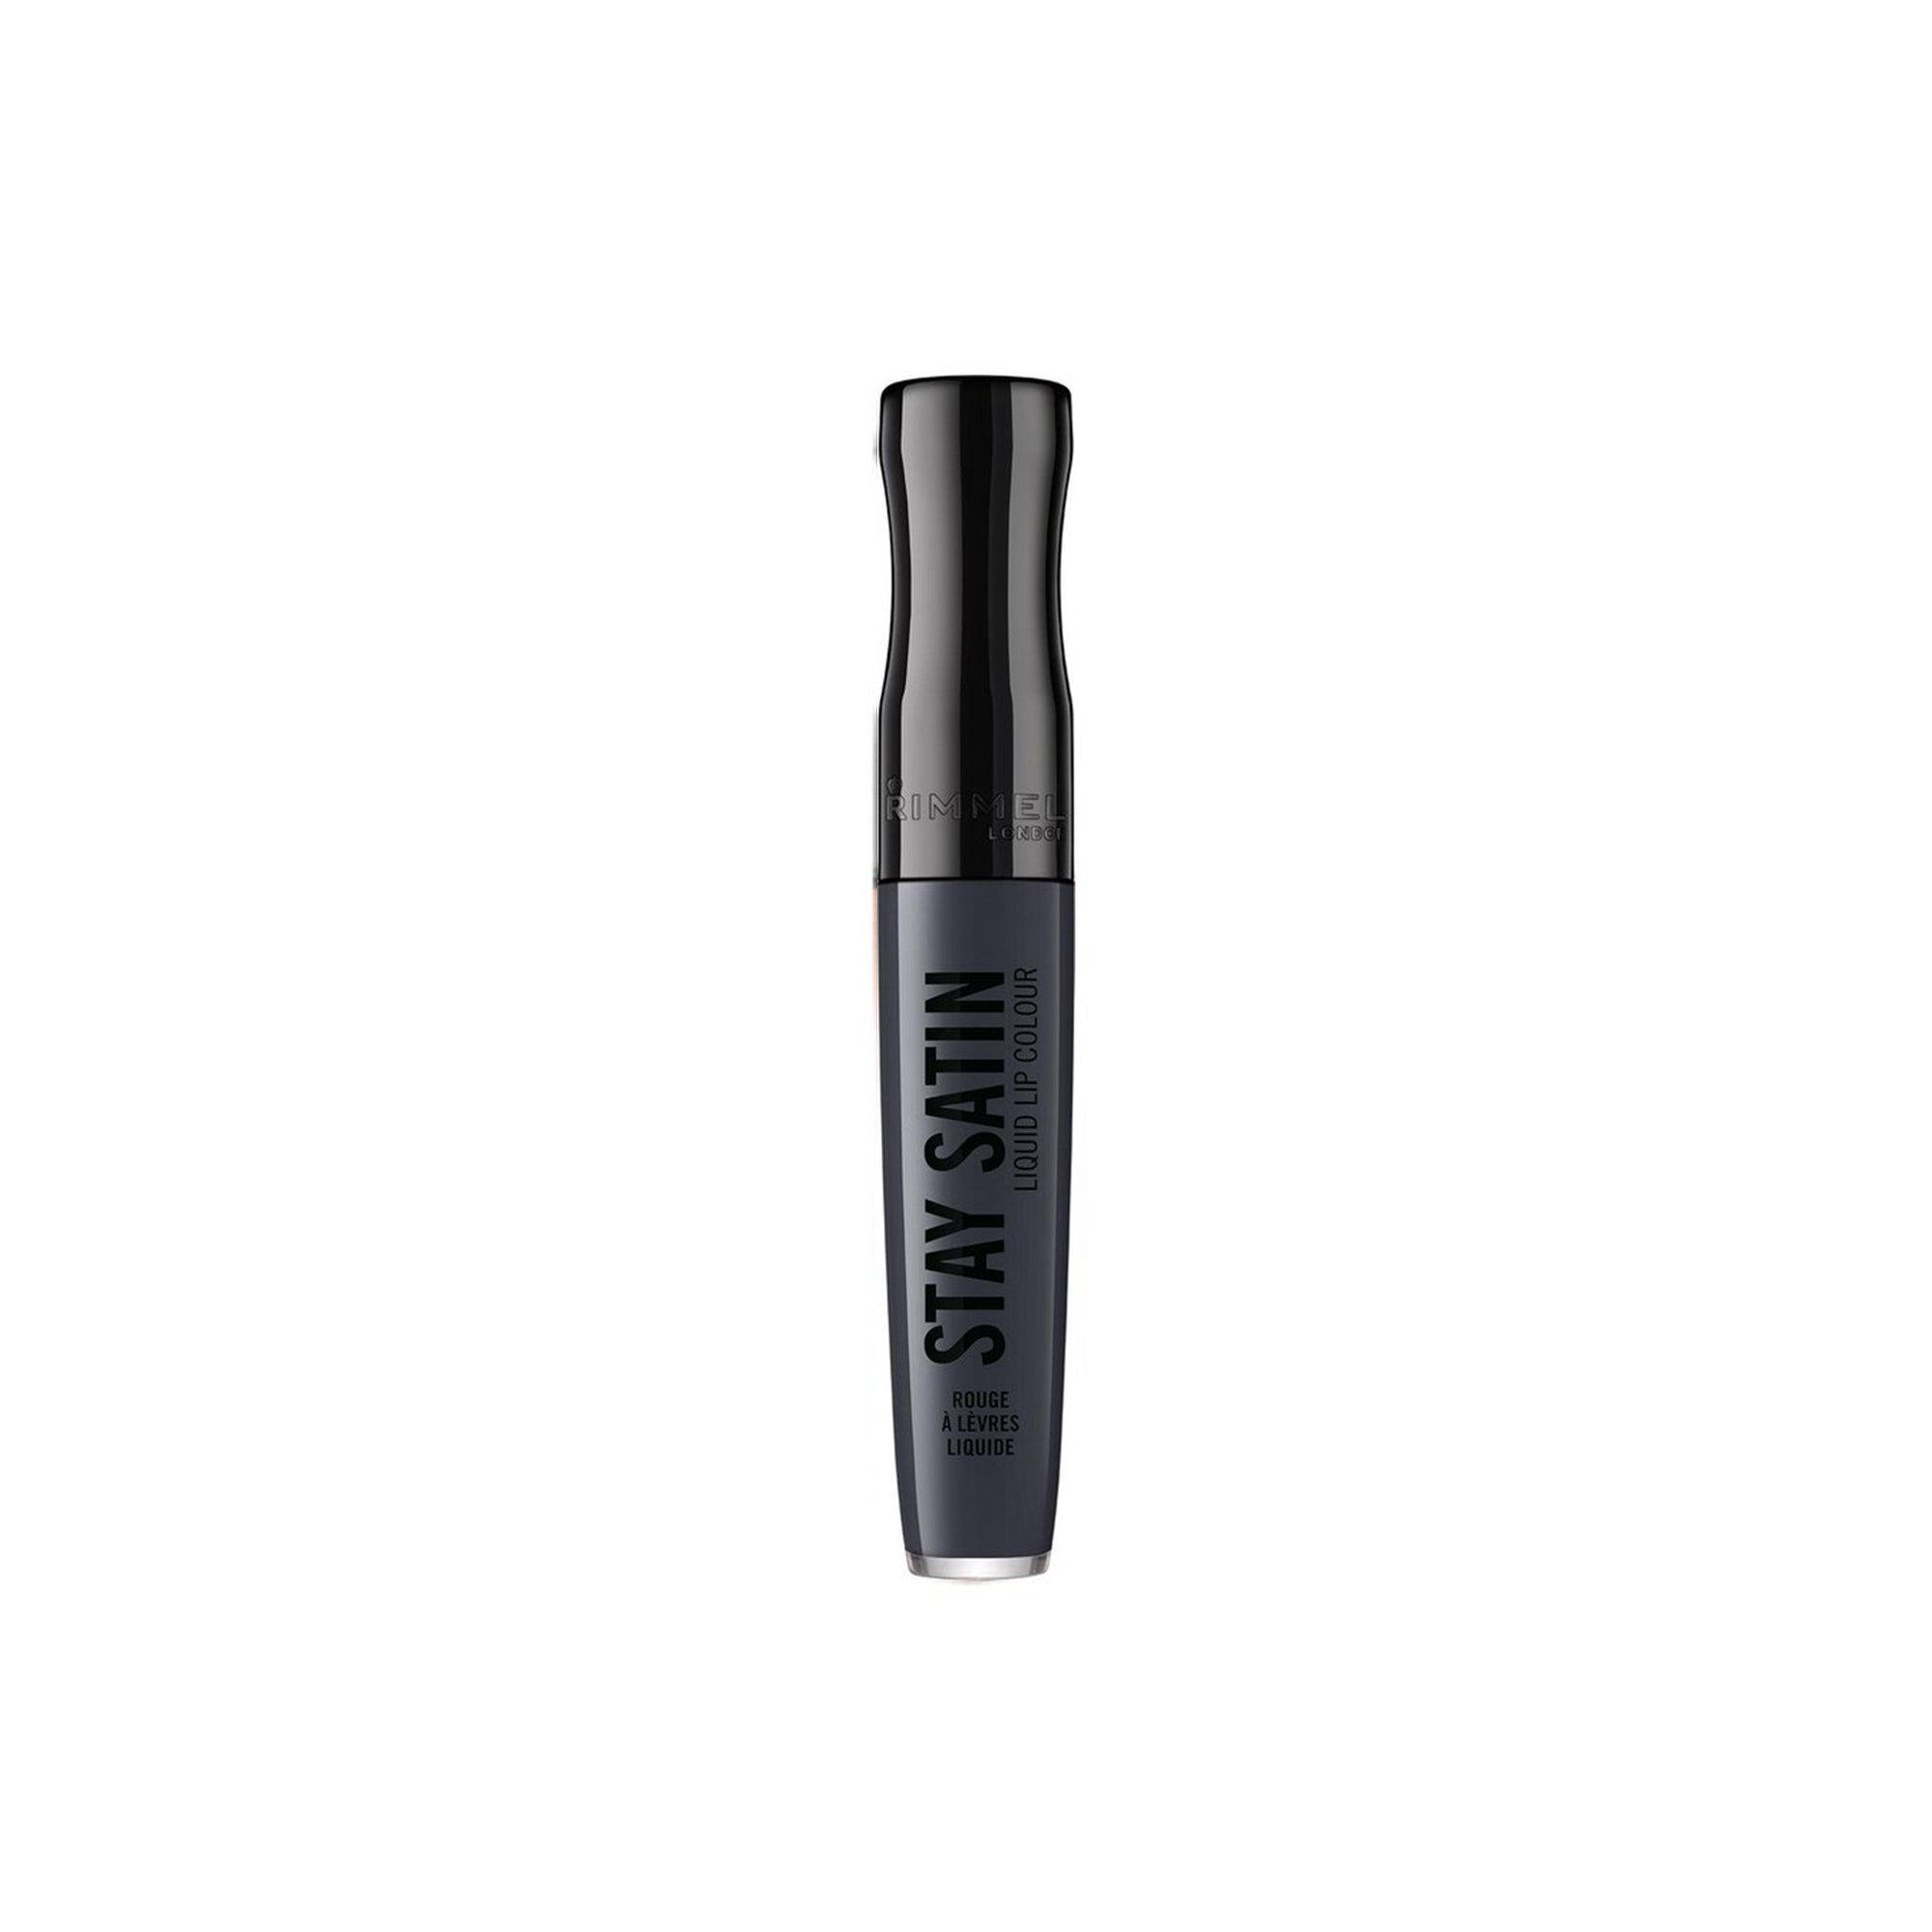 Rimmel London Stay Matte Lasting Finish Lipstick